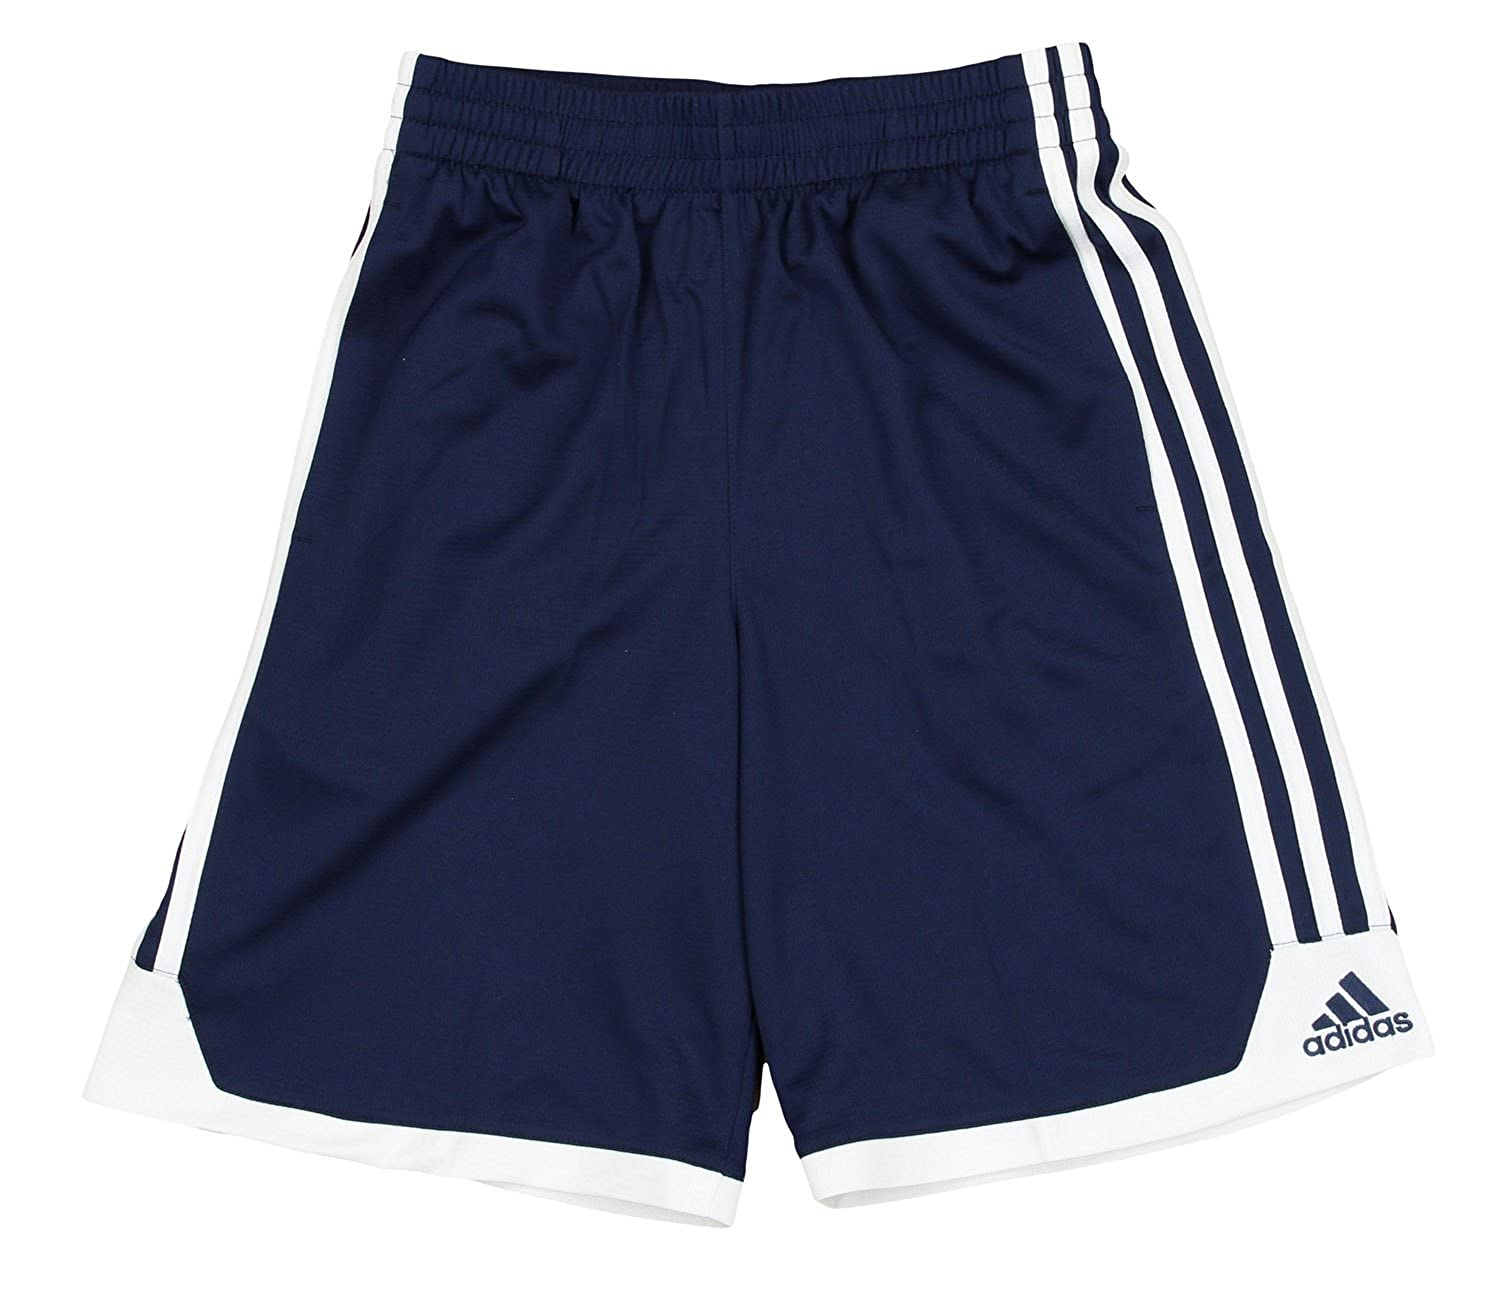 adidas Boys Youth Mesh On Field Athletic Shorts, Color Options